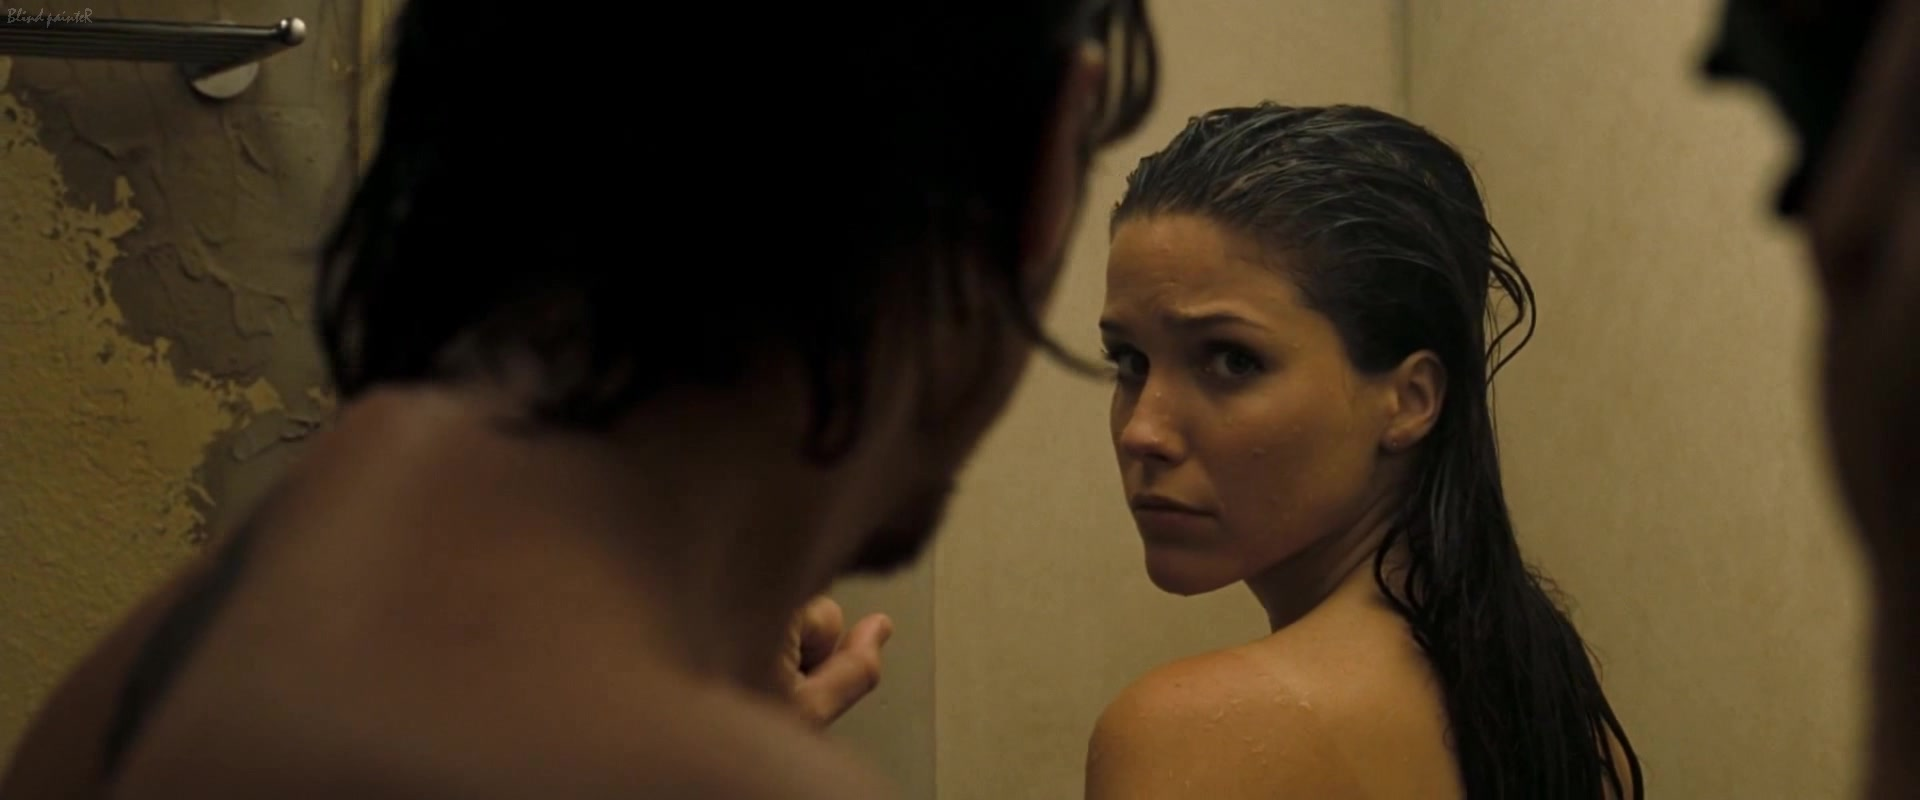 Sophia bush sex scene